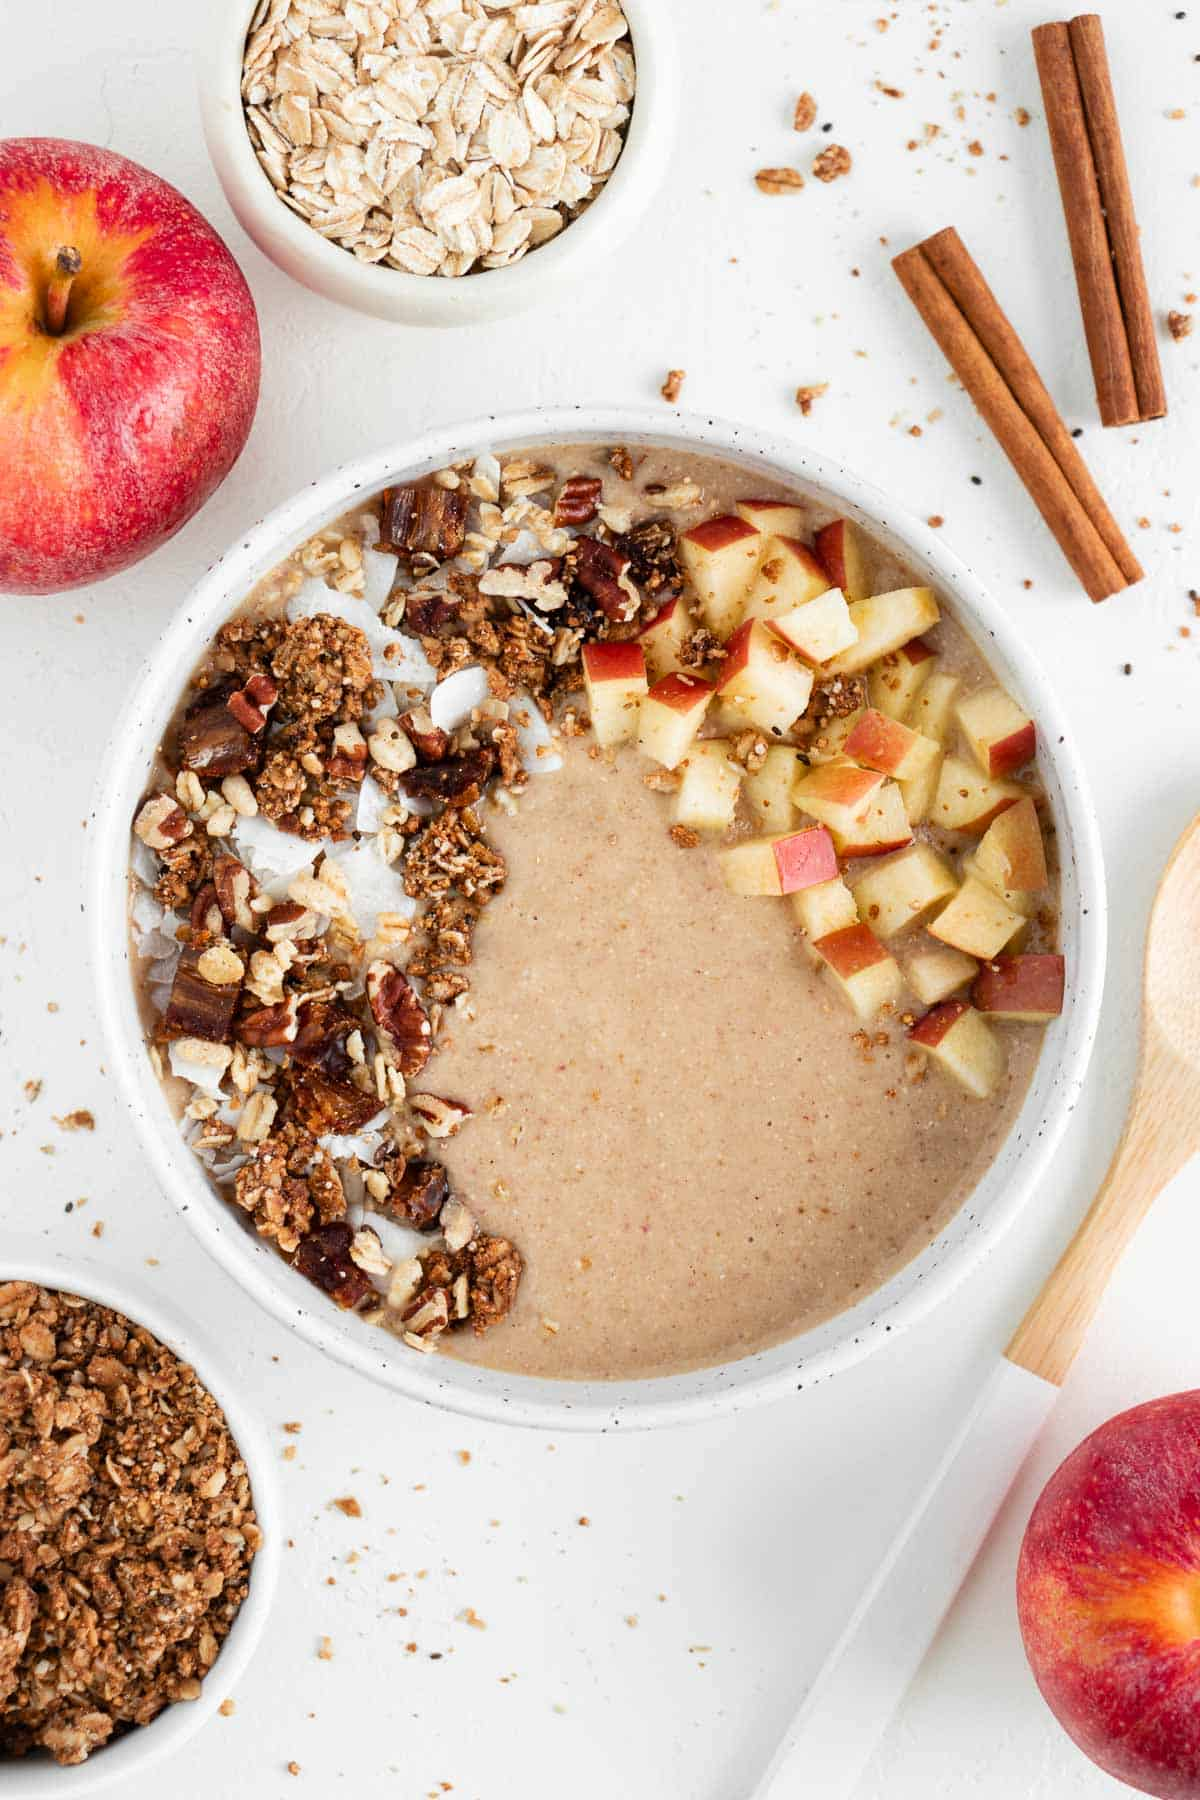 an apple pie smoothie bowl in a ceramic bowl surrounded by apples, oats, granola, and cinnamon sticks